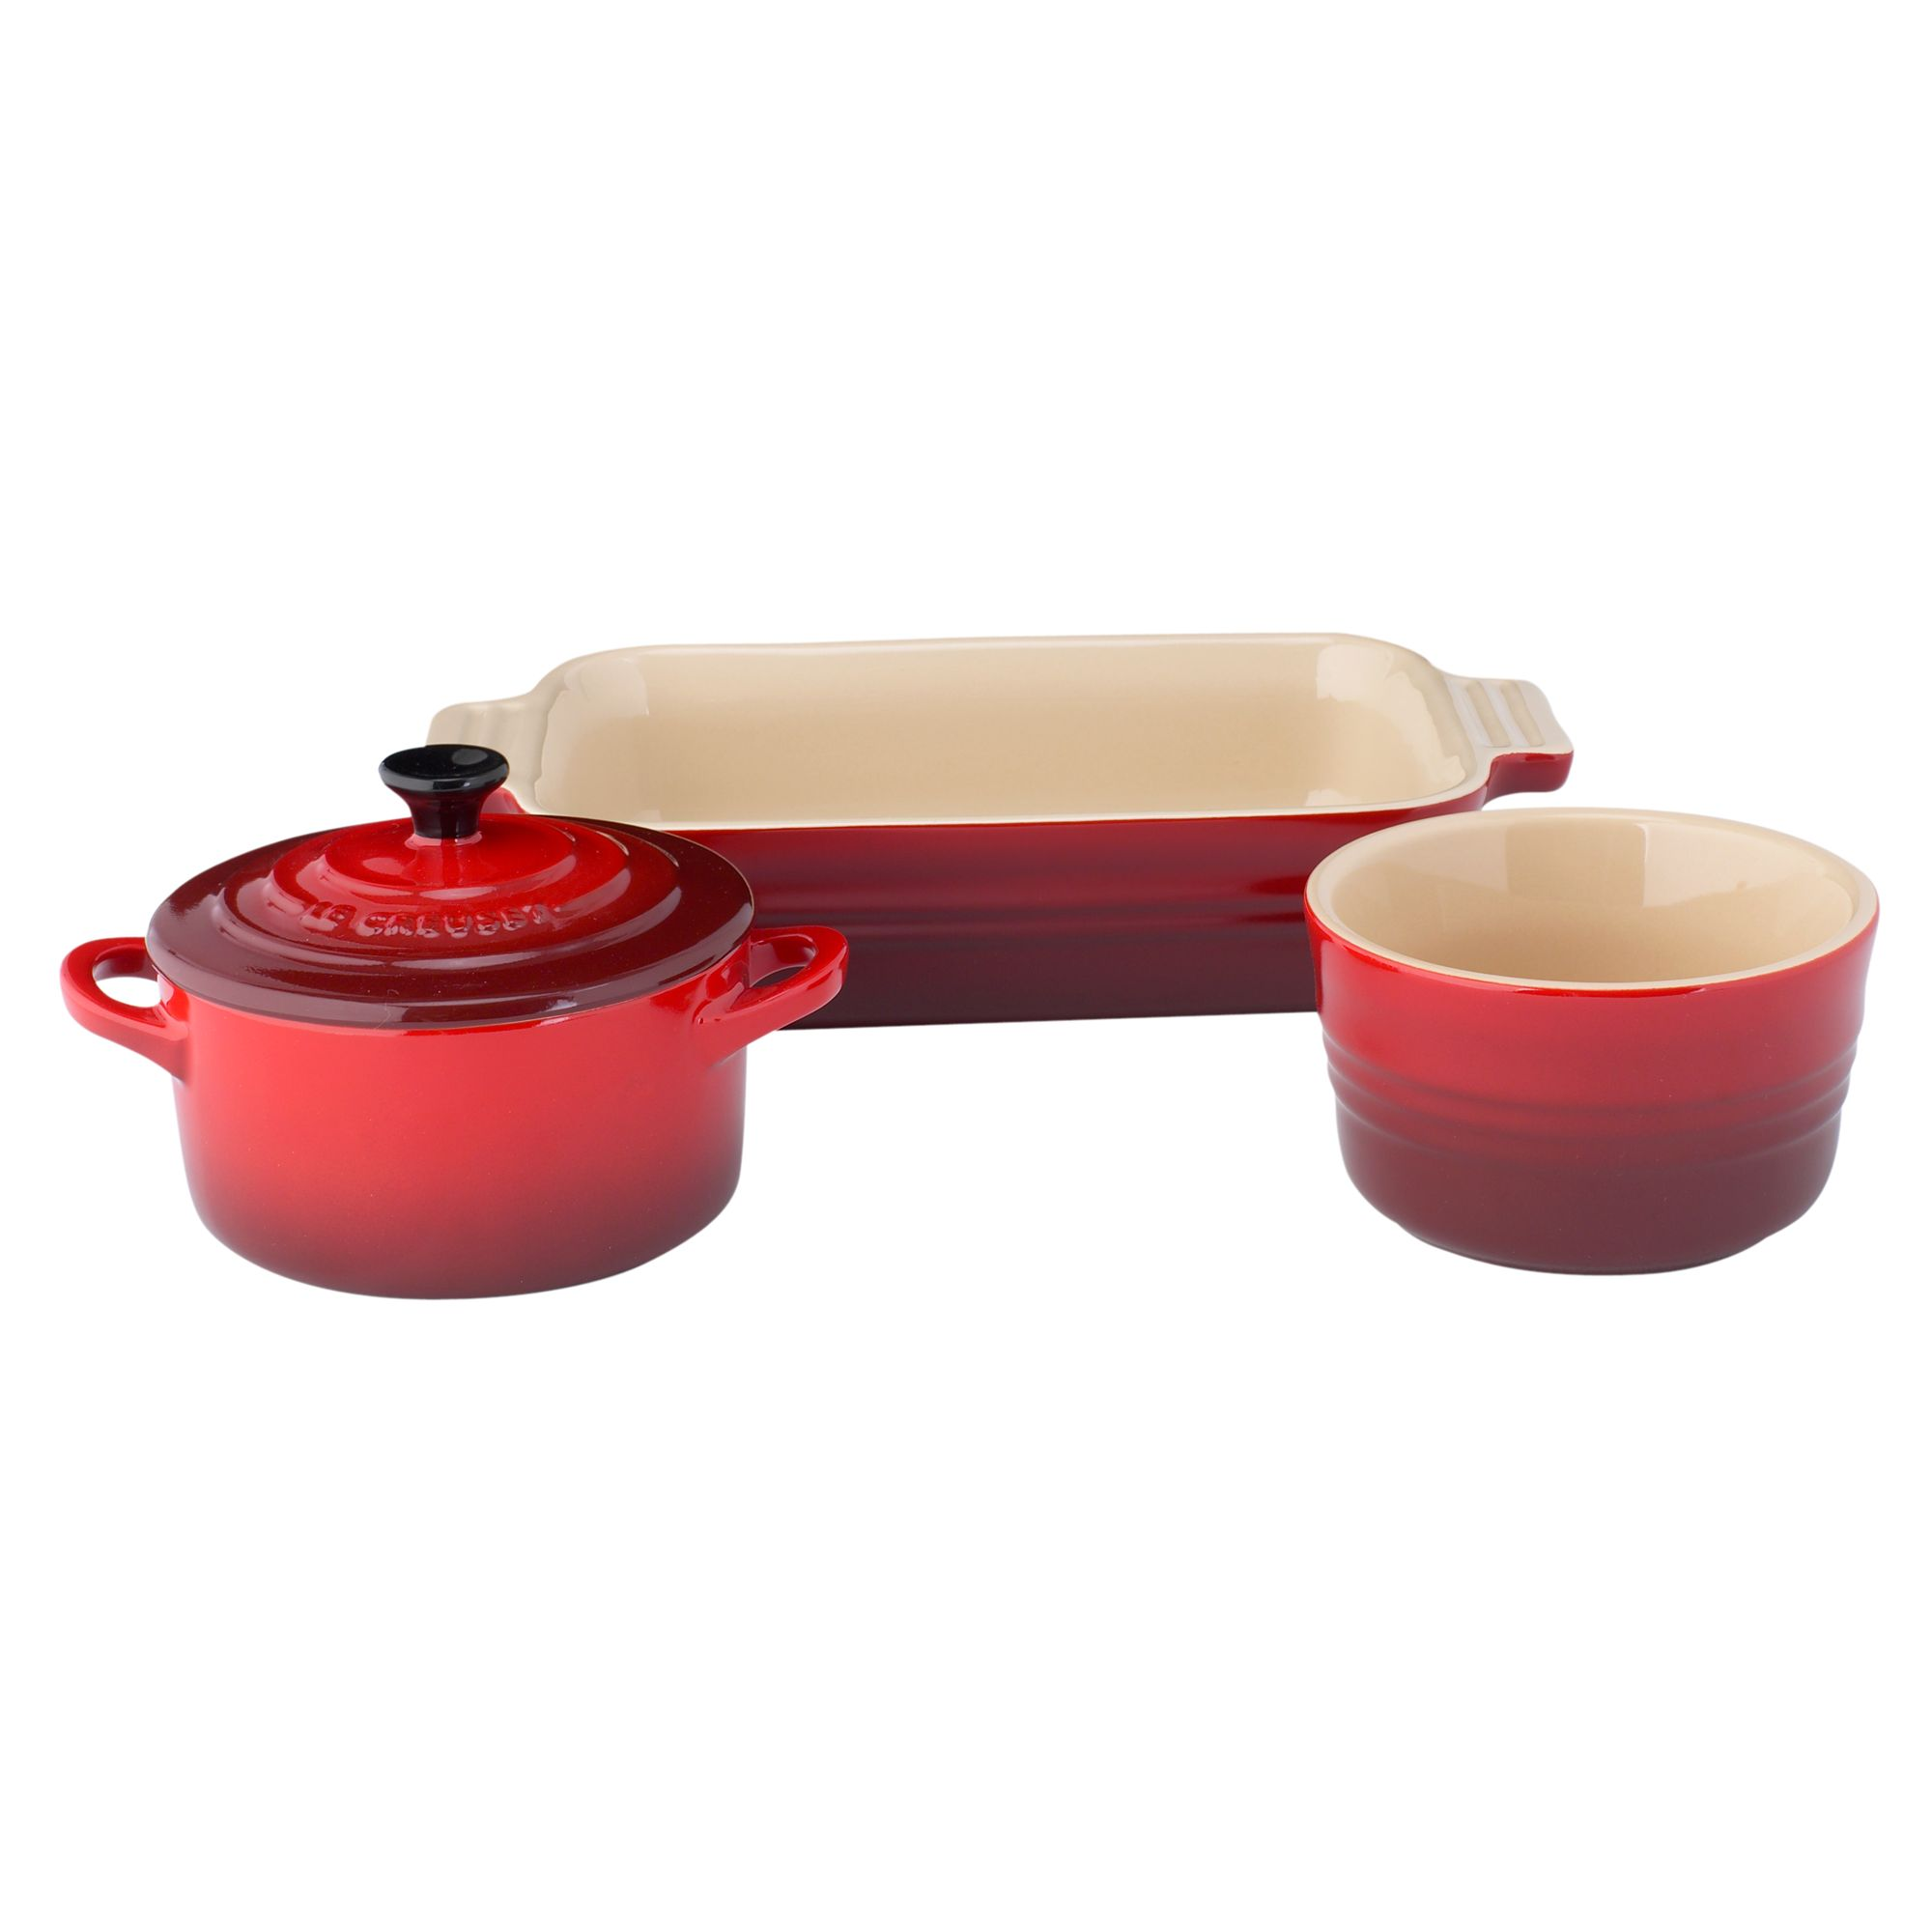 Cookware in Cerise